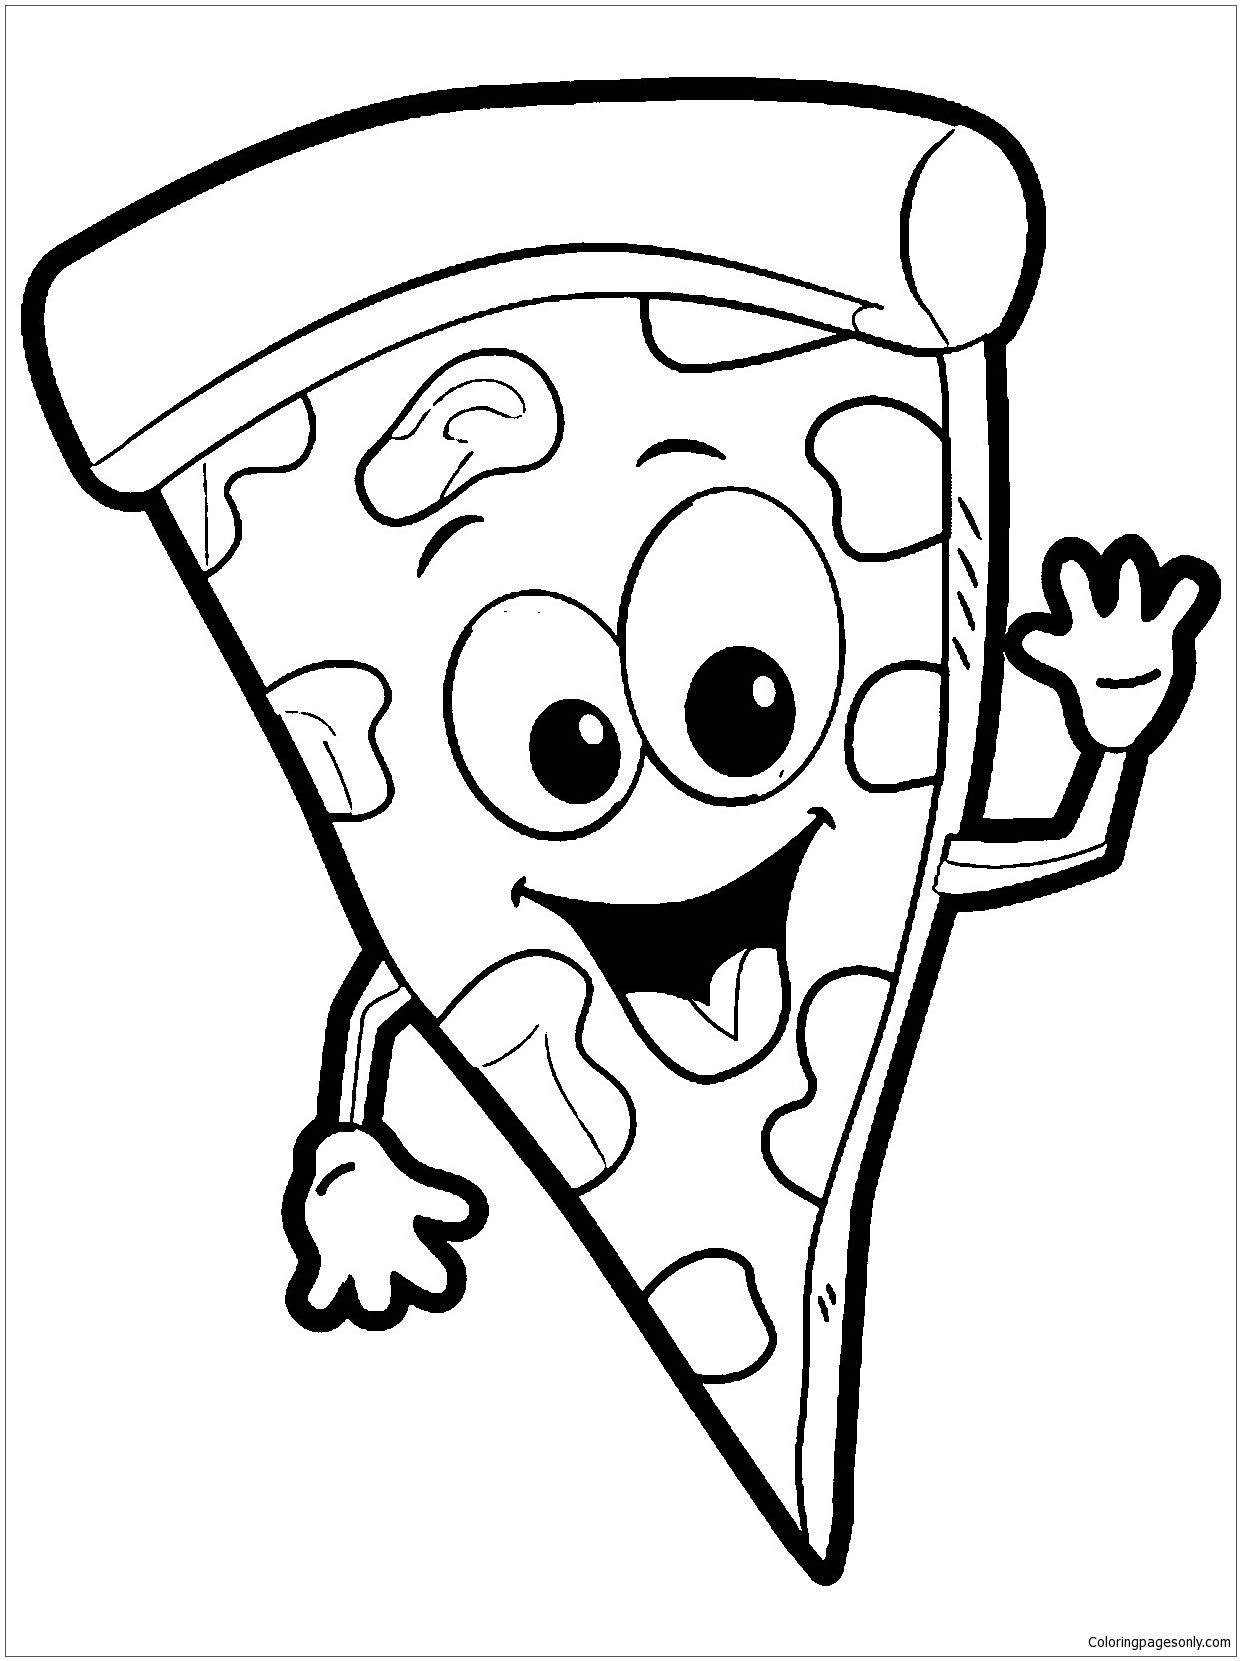 Best Awesome Shopkins Coloring Page Free Coloring Pages Online Shopkins Colouring Pages Kids Printable Coloring Pages Food Coloring Pages